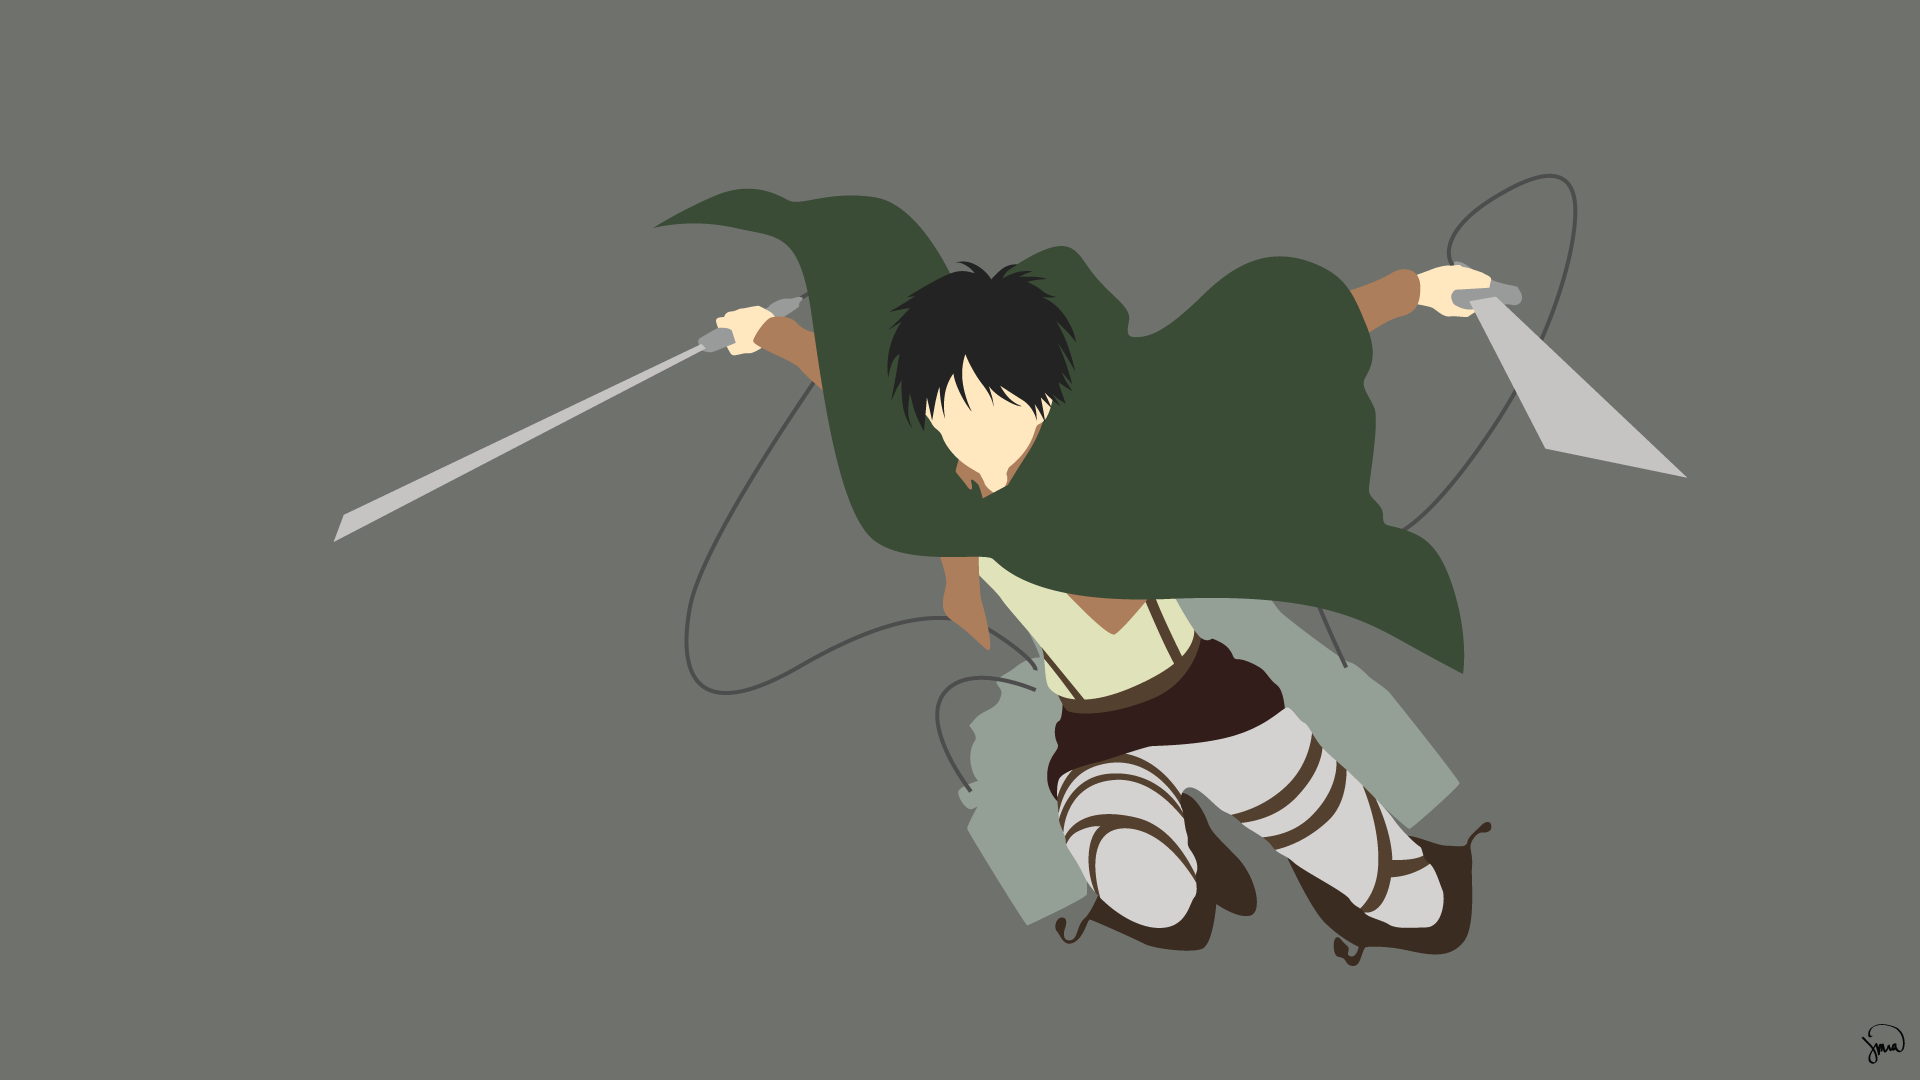 Attack On Titan Minimalist PC Wallpapers - Wallpaper Cave